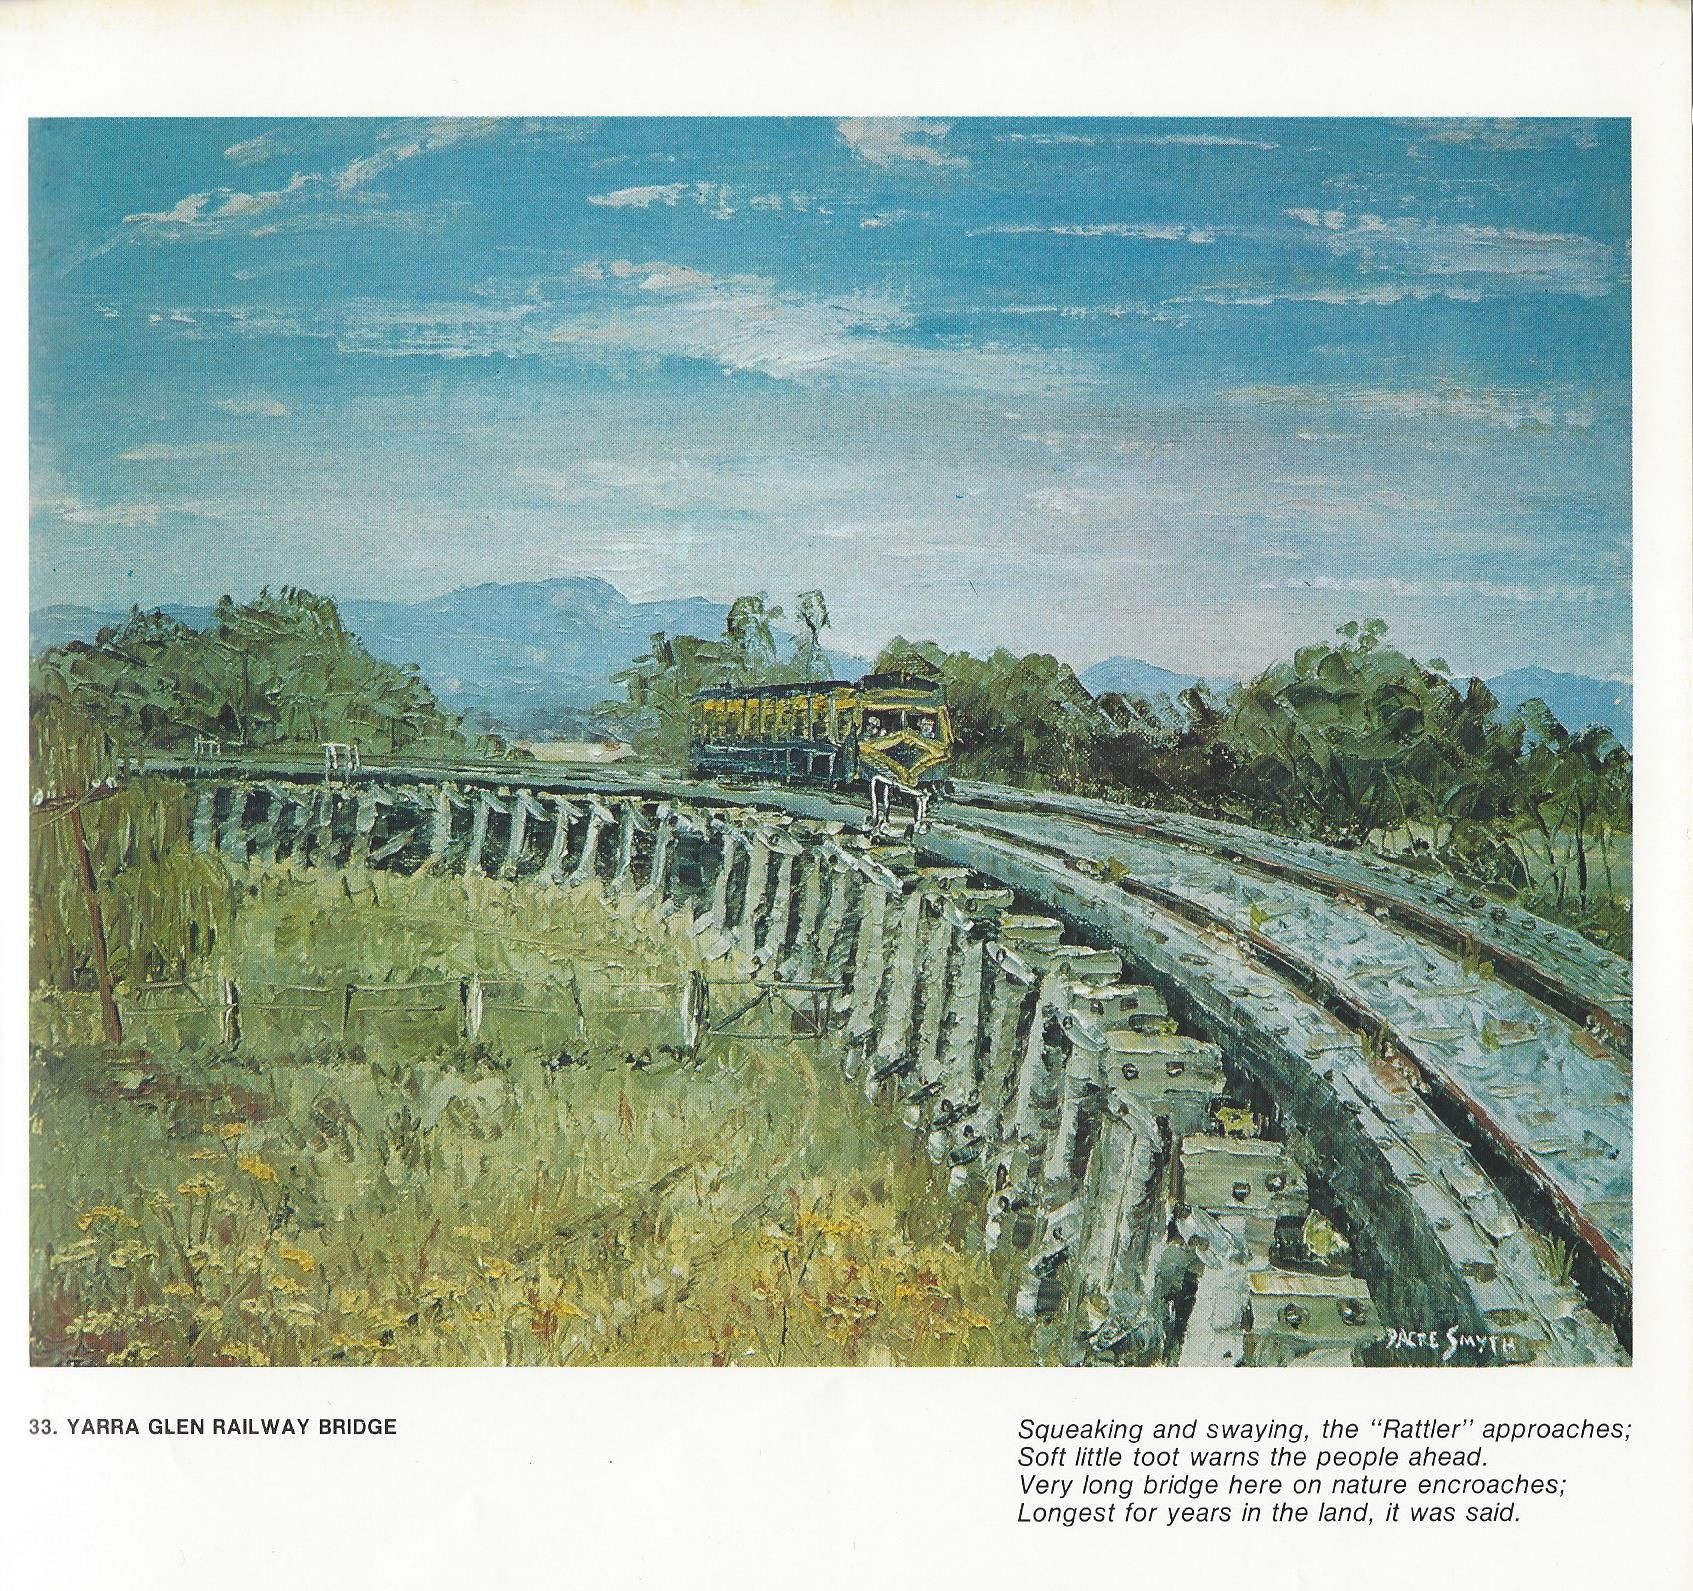 33. Yarra Glen Railway Bridge